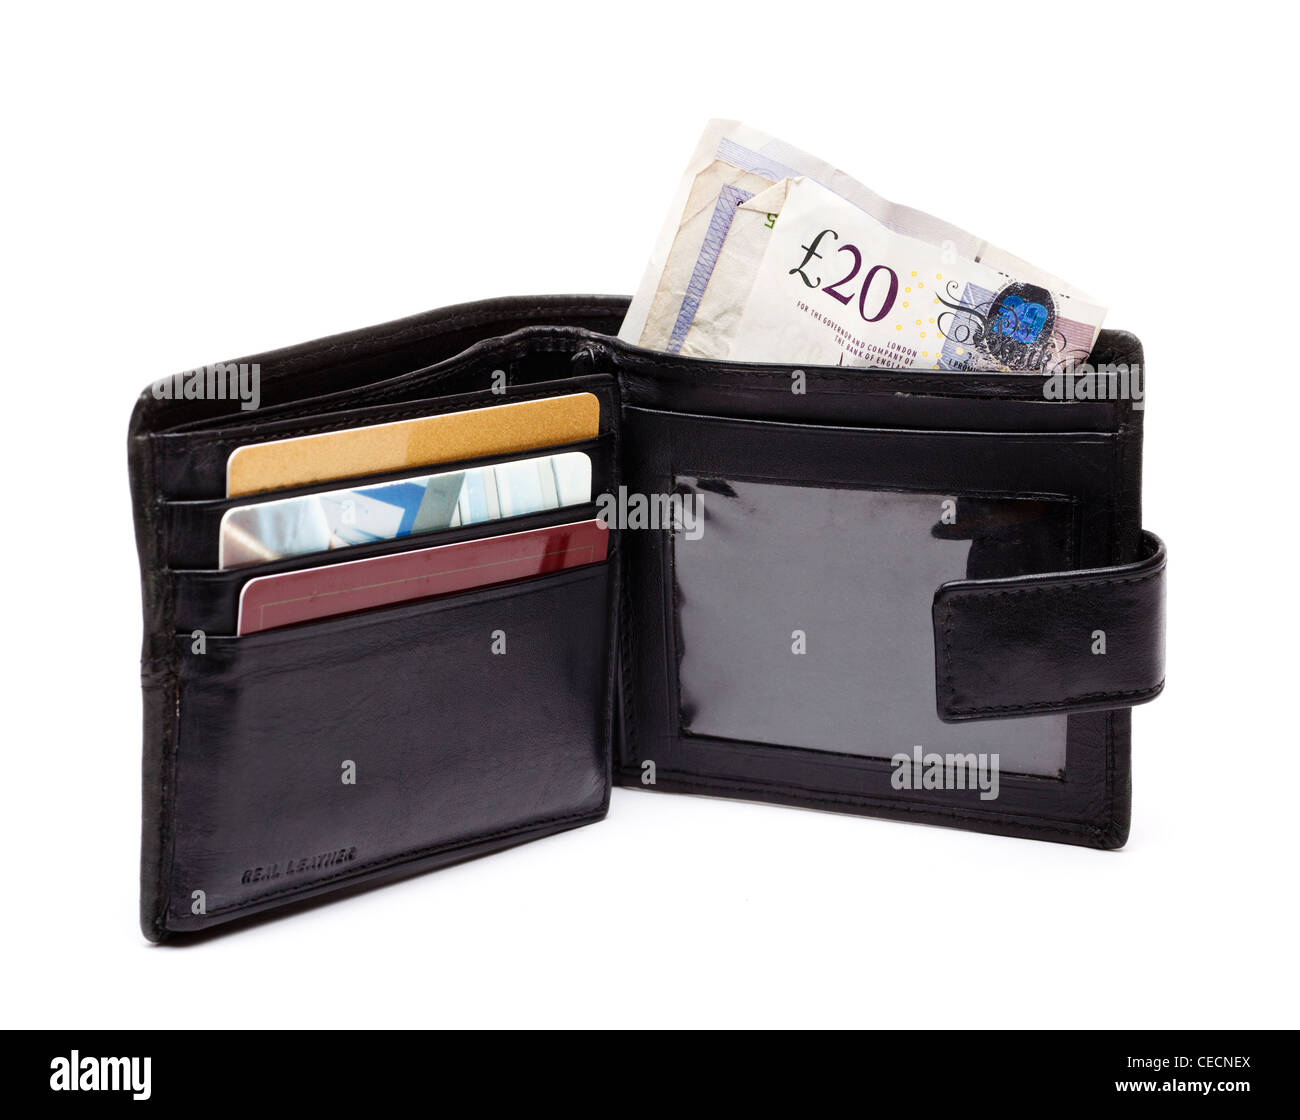 Money in an open wallet - British currency notes - on white background - Stock Image